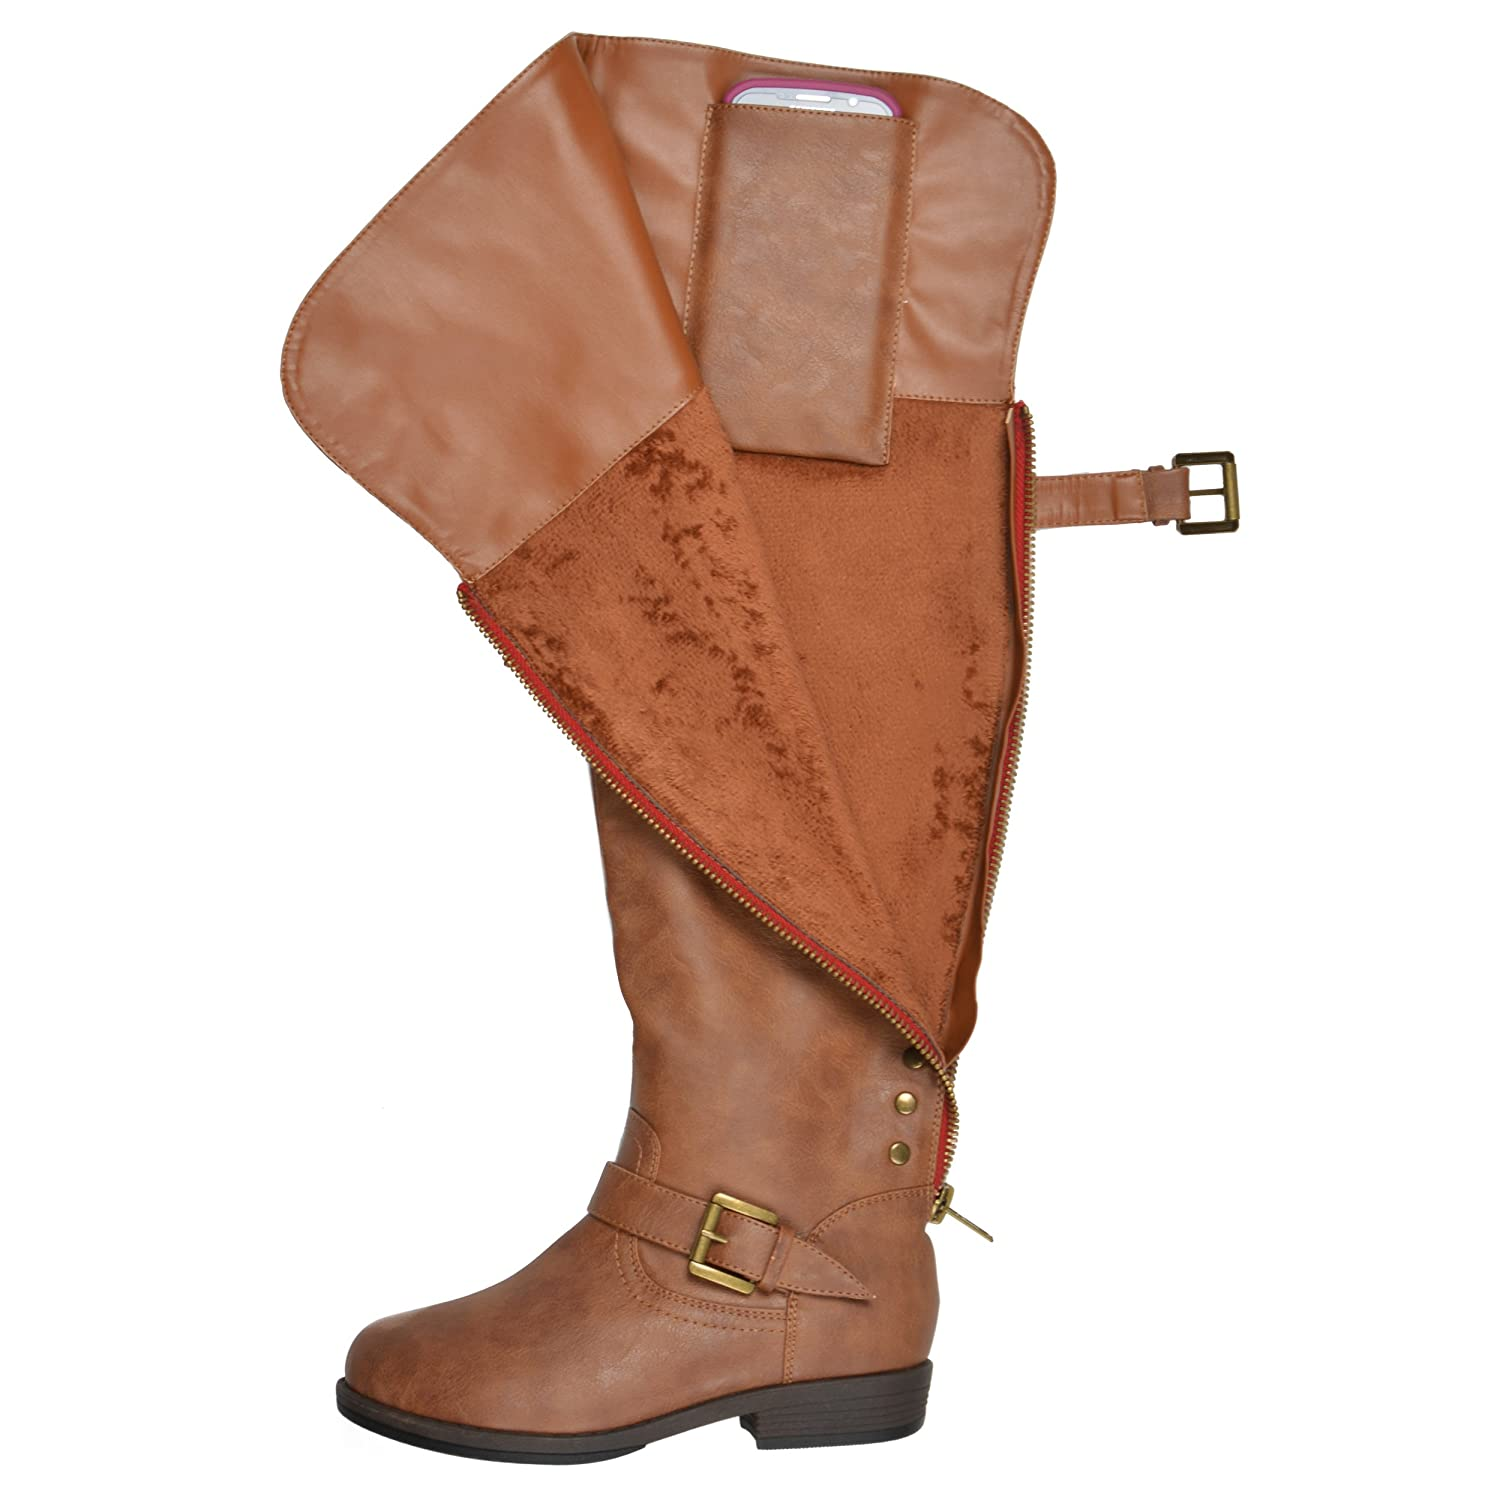 Journee Collection Women's Studded Over-the-knee Inside Pocket Buckle Boots B013X0YJIW 7 W US|Chestnut